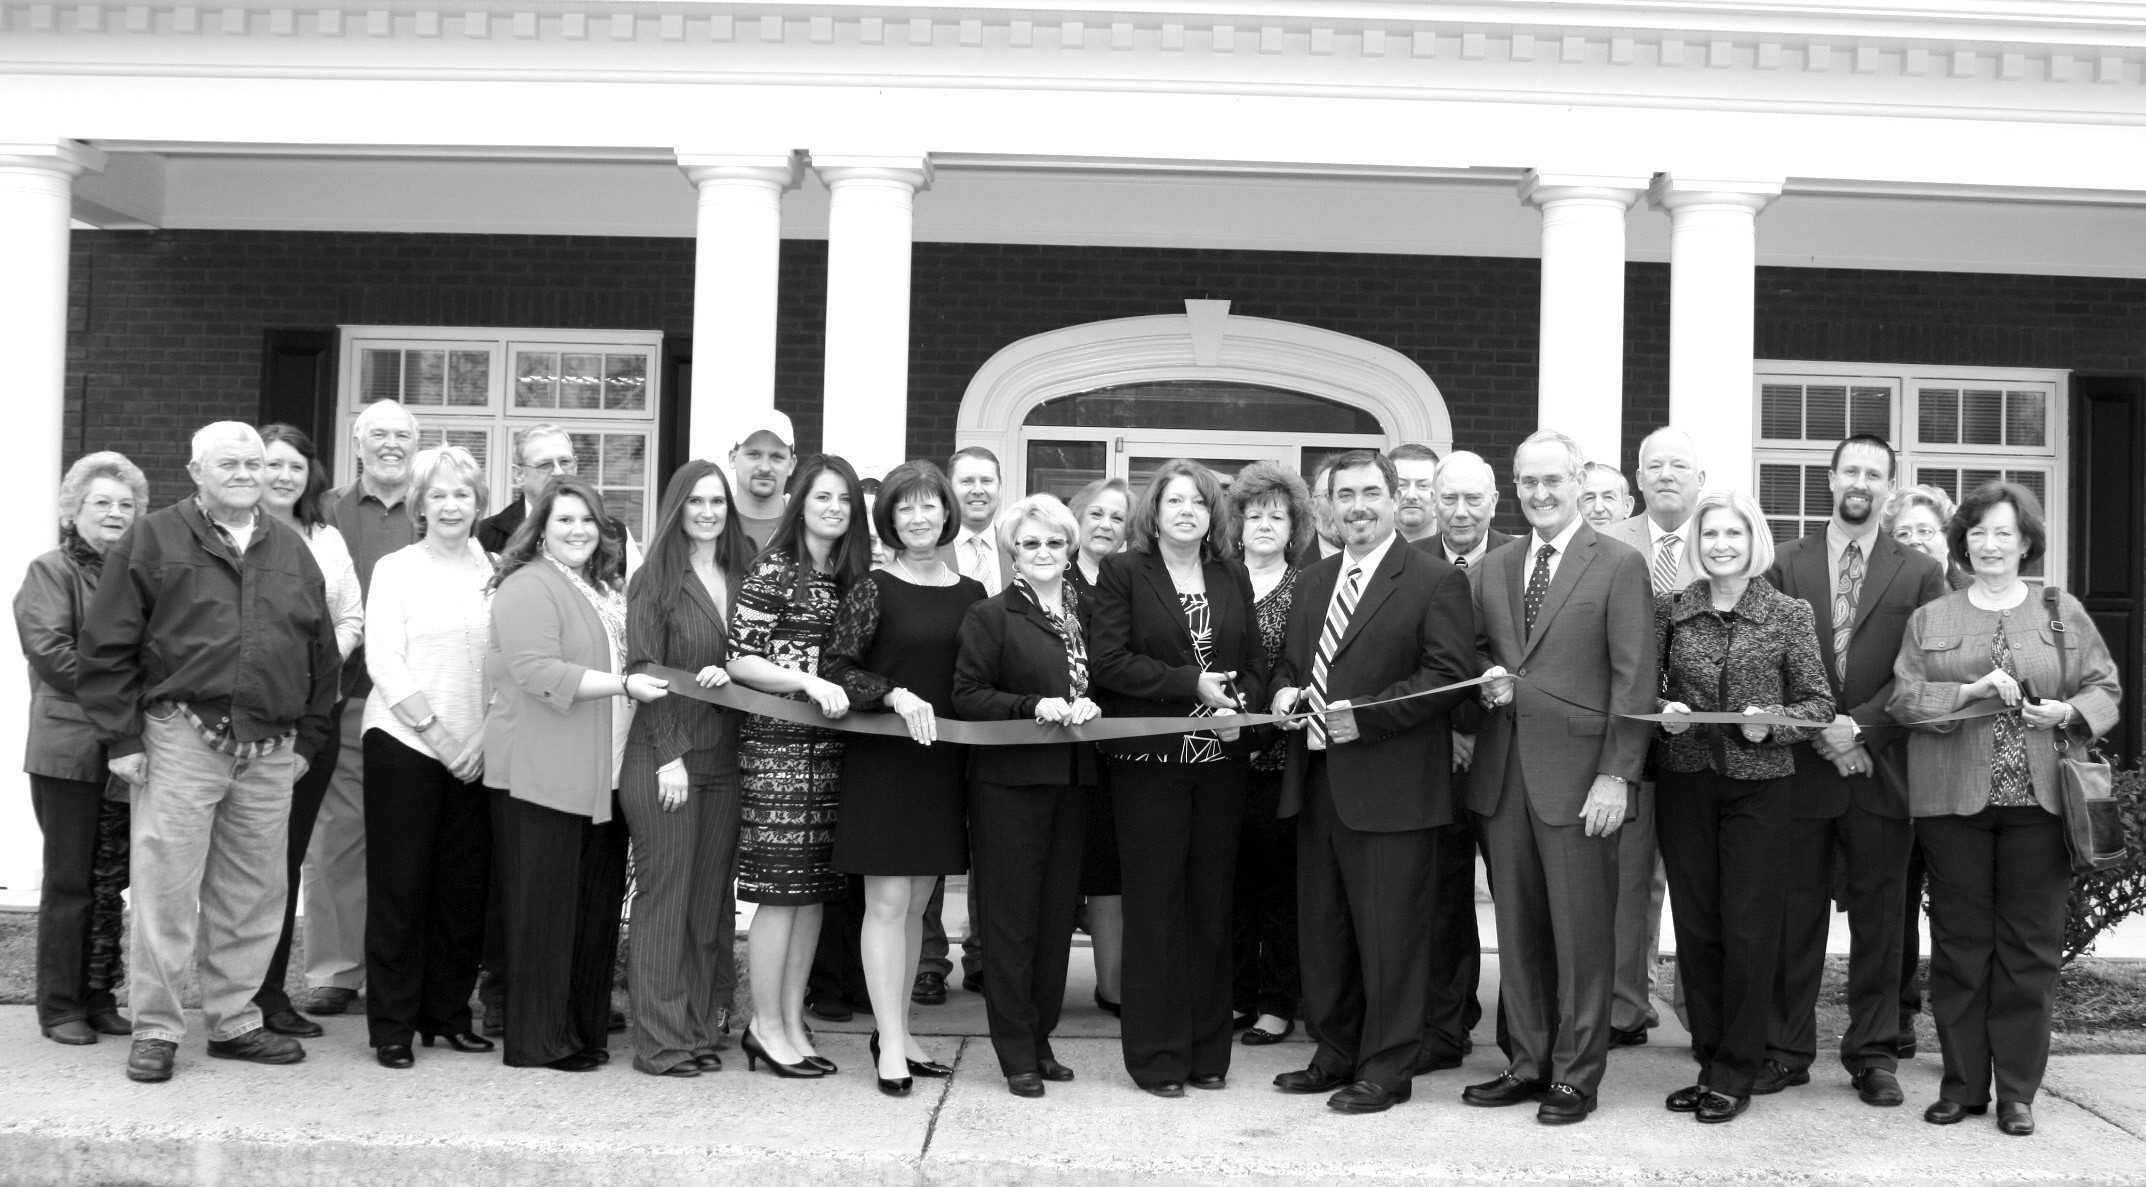 Last week, the Liberty Bank branch in Snead celebrated its grand opening with a ribbon cutting.'We pride ourselves on the level of service we provide,' says Liberty Bank president Chris Bailey.'We are always taking advantage of the latest in banking technology, but we also realize there is no substitution for one-on-one interaction. When you call us during business hours, you will hear a friendly voice on the other end of the line, not an automated answering system.' According to Bailey, a Snead native, the cornerstone of the company is remaining local. 'We are local employees with decision making authority serving local customers,' he says. Snead branch manager Joyce Breasseale agrees,'I worked at Cadence Bank in this same location when the company announced they would be closing our branch, but when Chris made the decision to bring Liberty to Snead, he hired me back, along with three other Cadence employees.' Bailey says this was important, not only to provide jobs in the community, but also so residents could continue to see familiar faces. Liberty Bank – open Monday through Thursday 8 a.m. until 4 p.m.; 8 a.m. until 5 p.m. on Friday; and 8 a.m. until noon on Saturday – is located on U.S. 278 across from Snead Park. For more information, call 466-3709. – Nicole Singleton